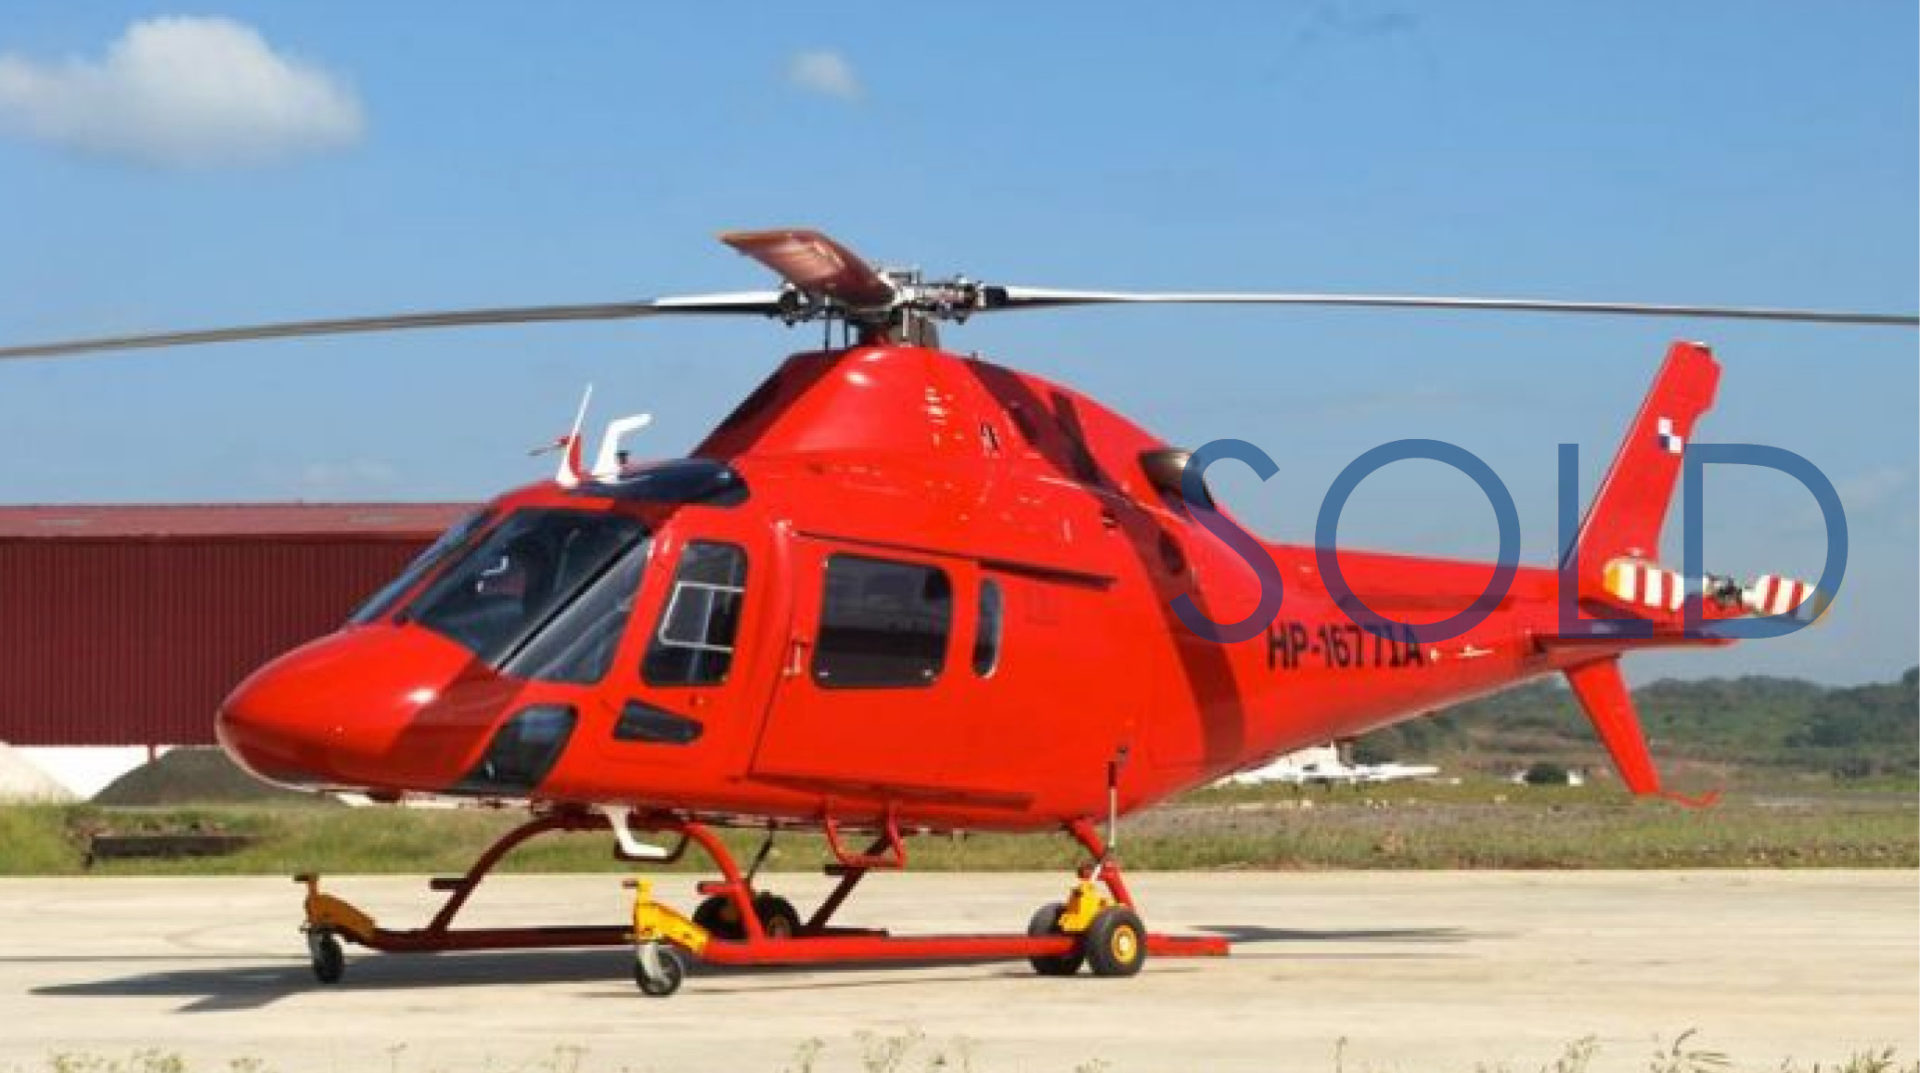 Agusta-AW119-MKII - SOLD